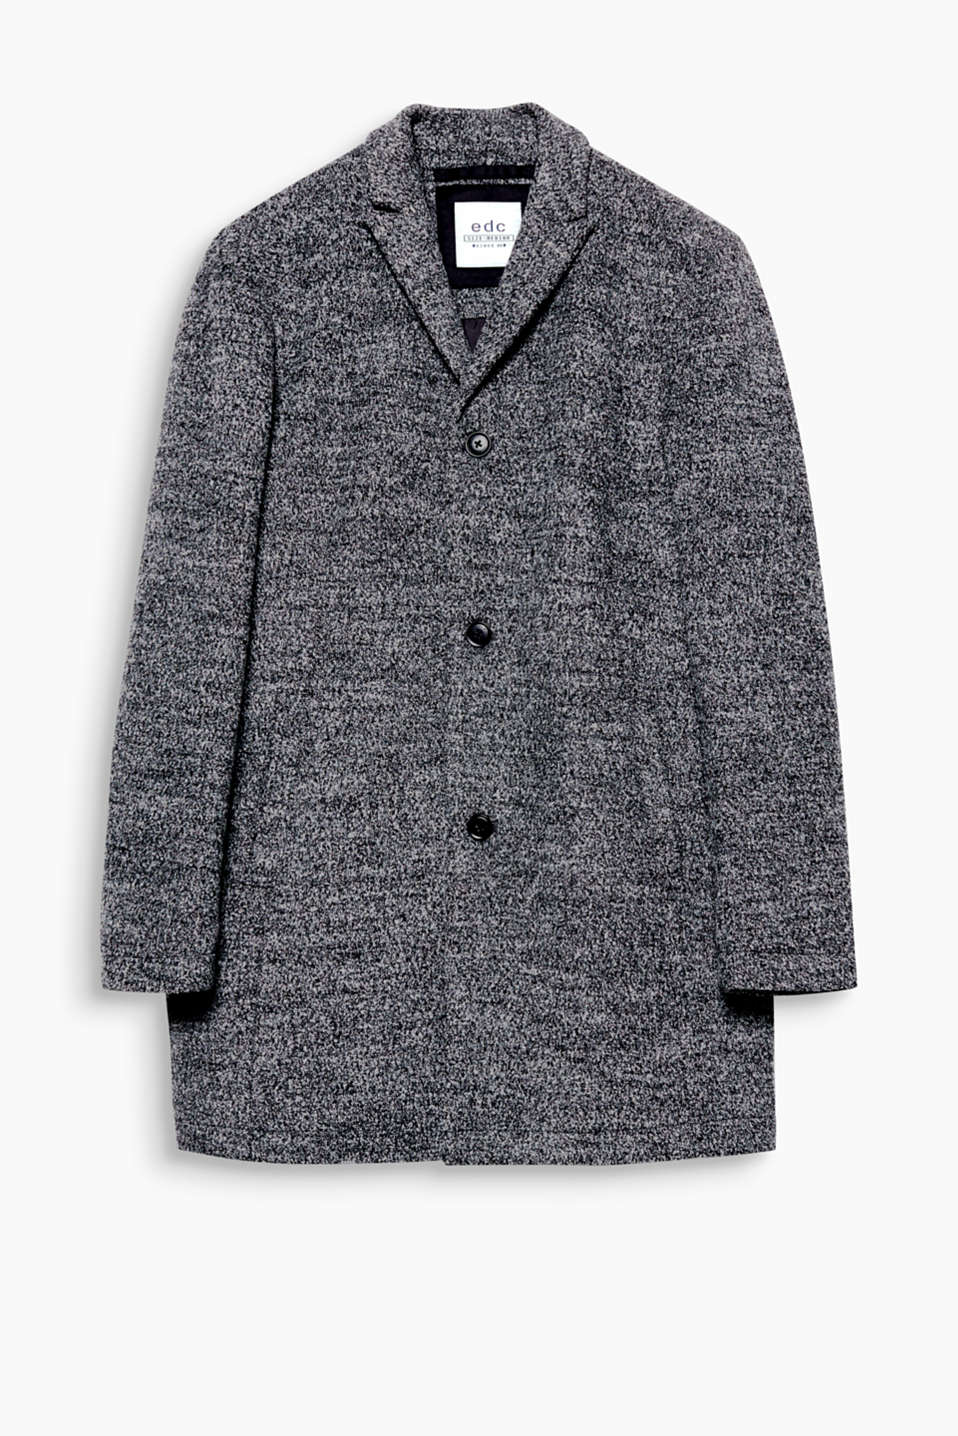 We love textured bouclé fabric! This coat can be worn with both casual and elegant styles